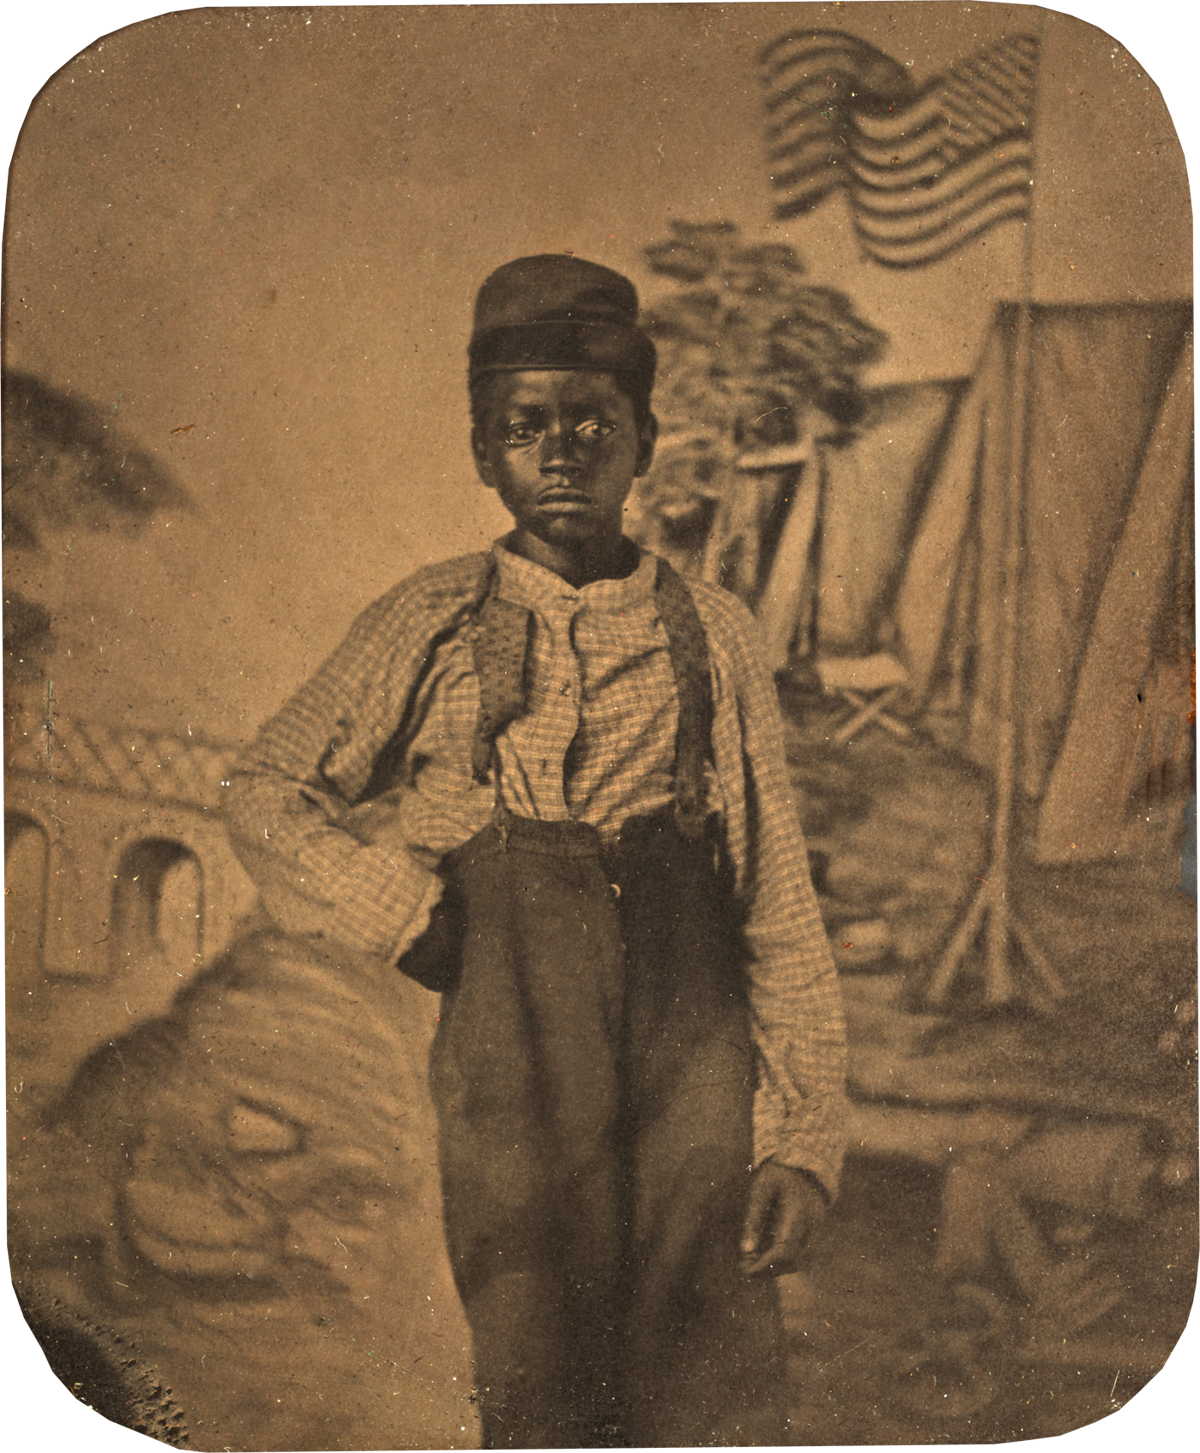 Studio Portrait Of African American Boy With Civil War